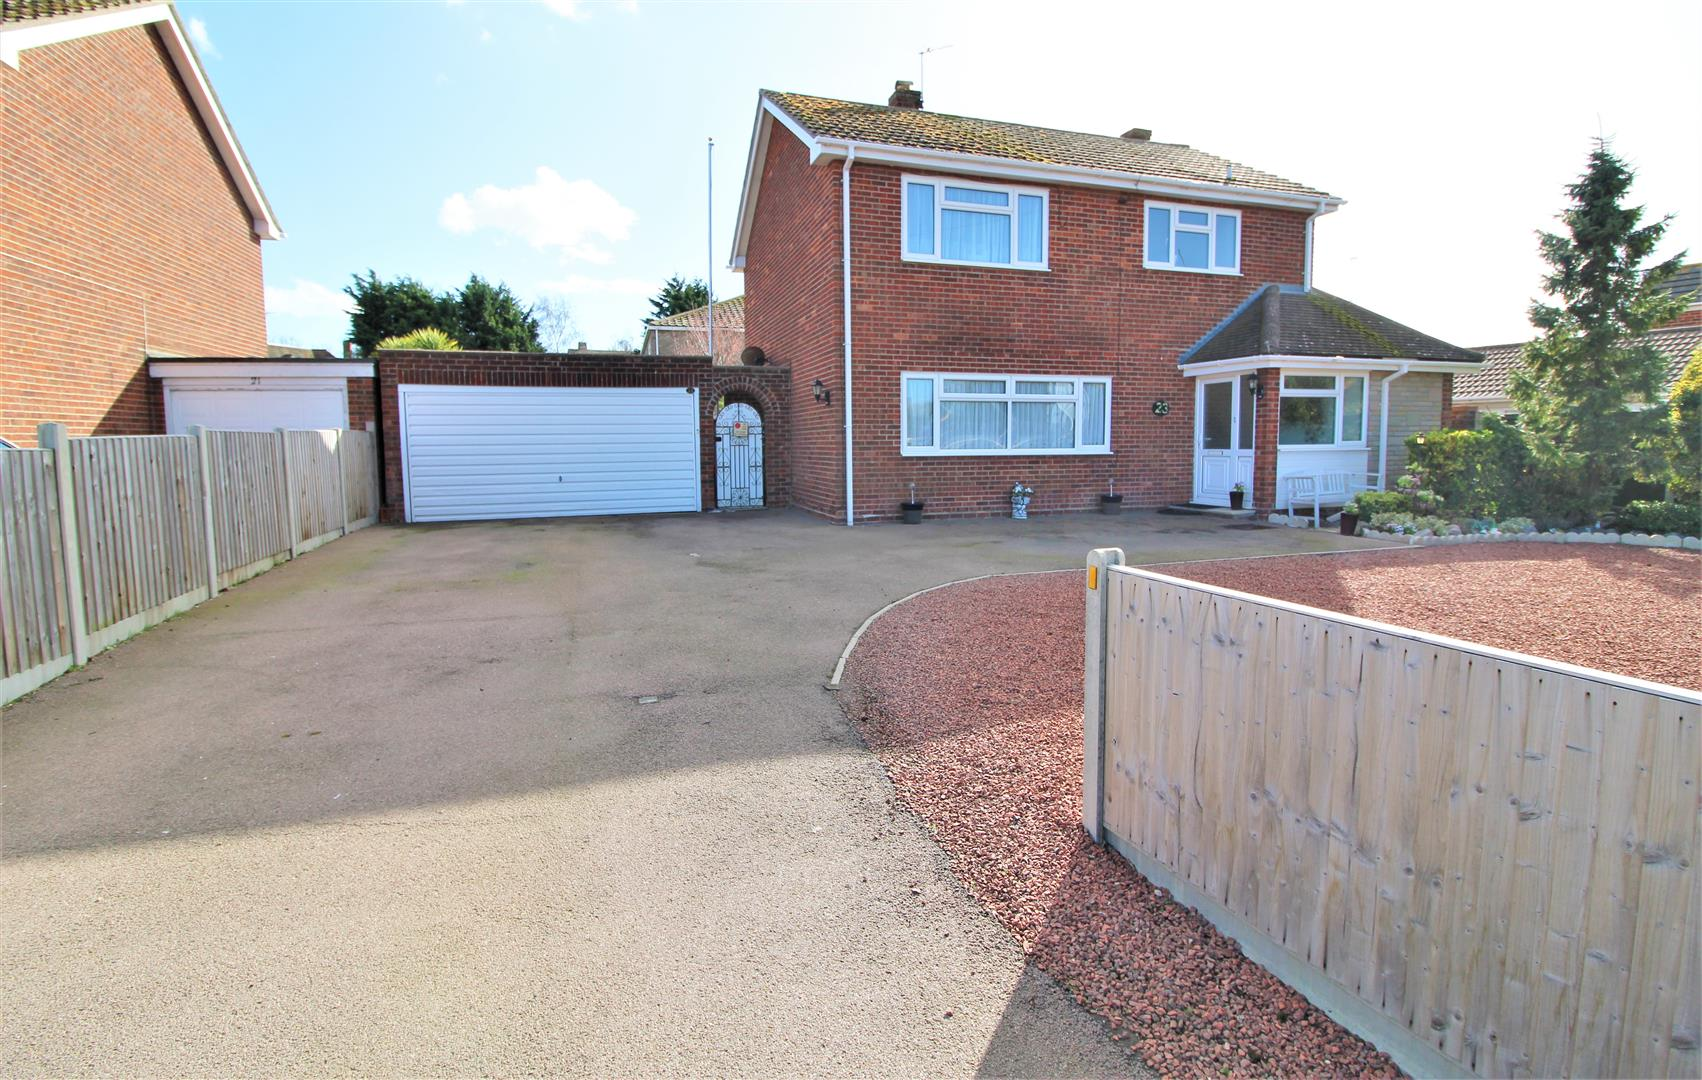 Kirby Road, Walton On The Naze, Essex, CO14 8QT